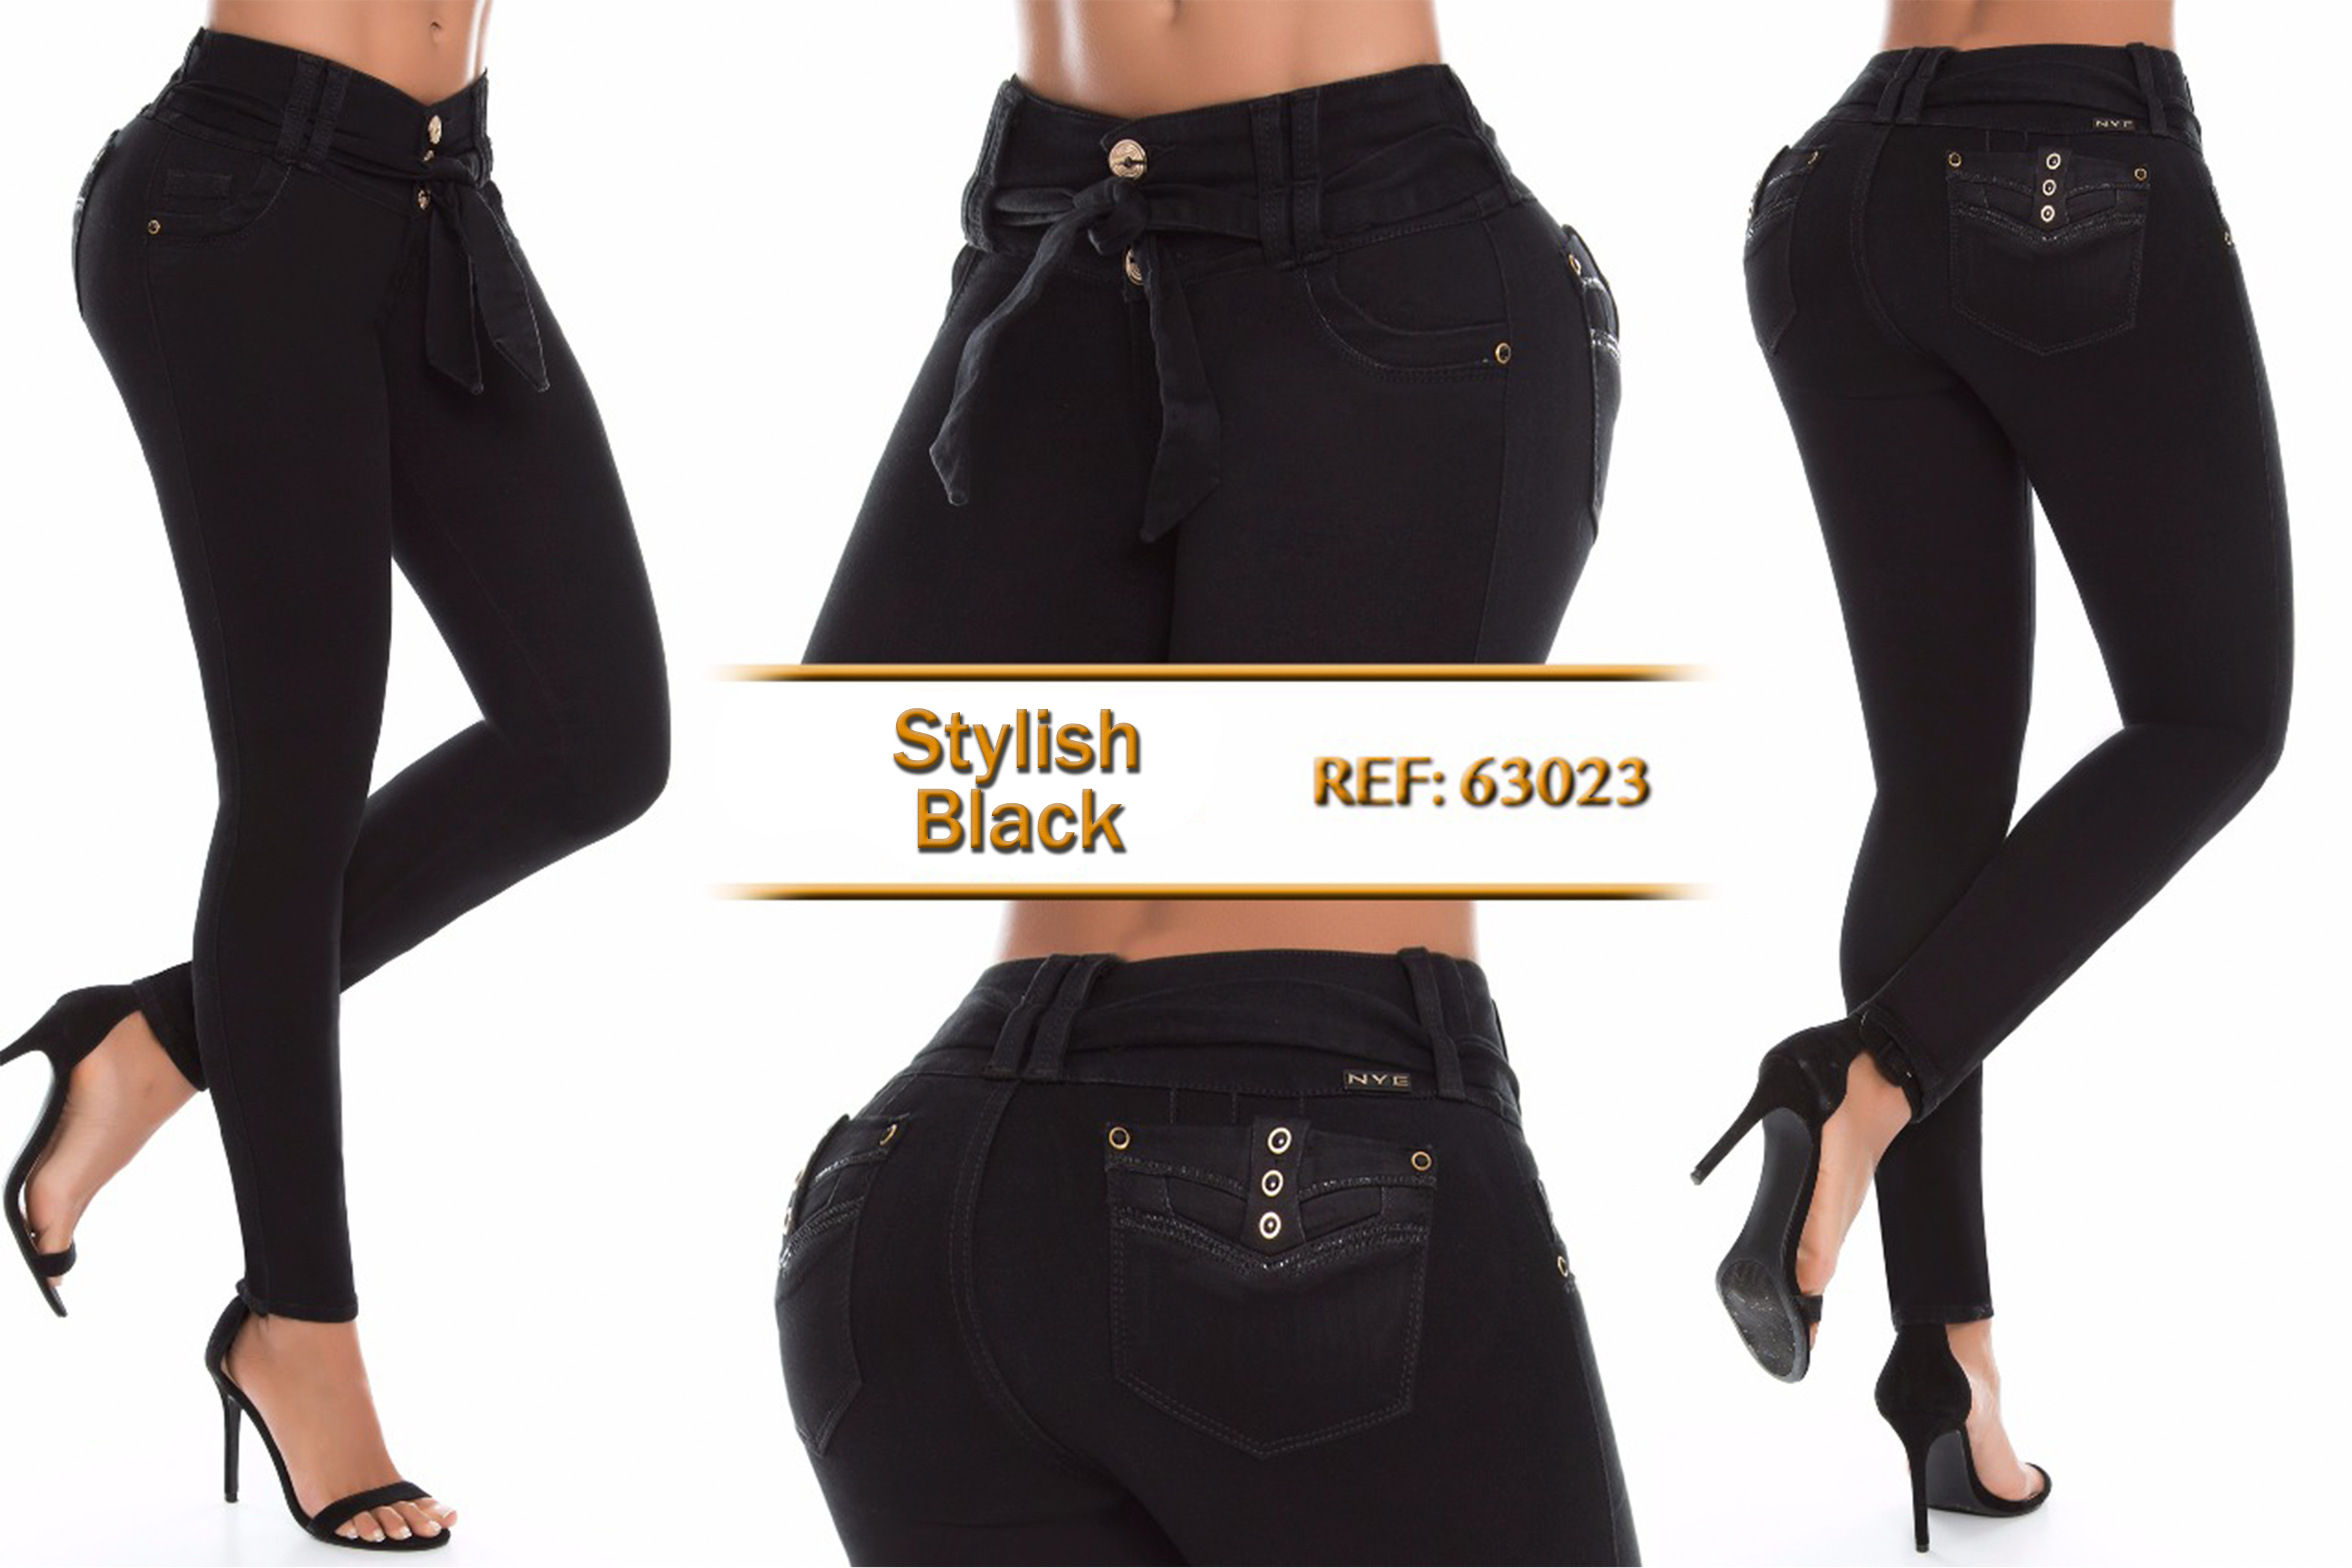 Mid/high Waisted Butt Lifting Cropped Jeans Ref: 63023